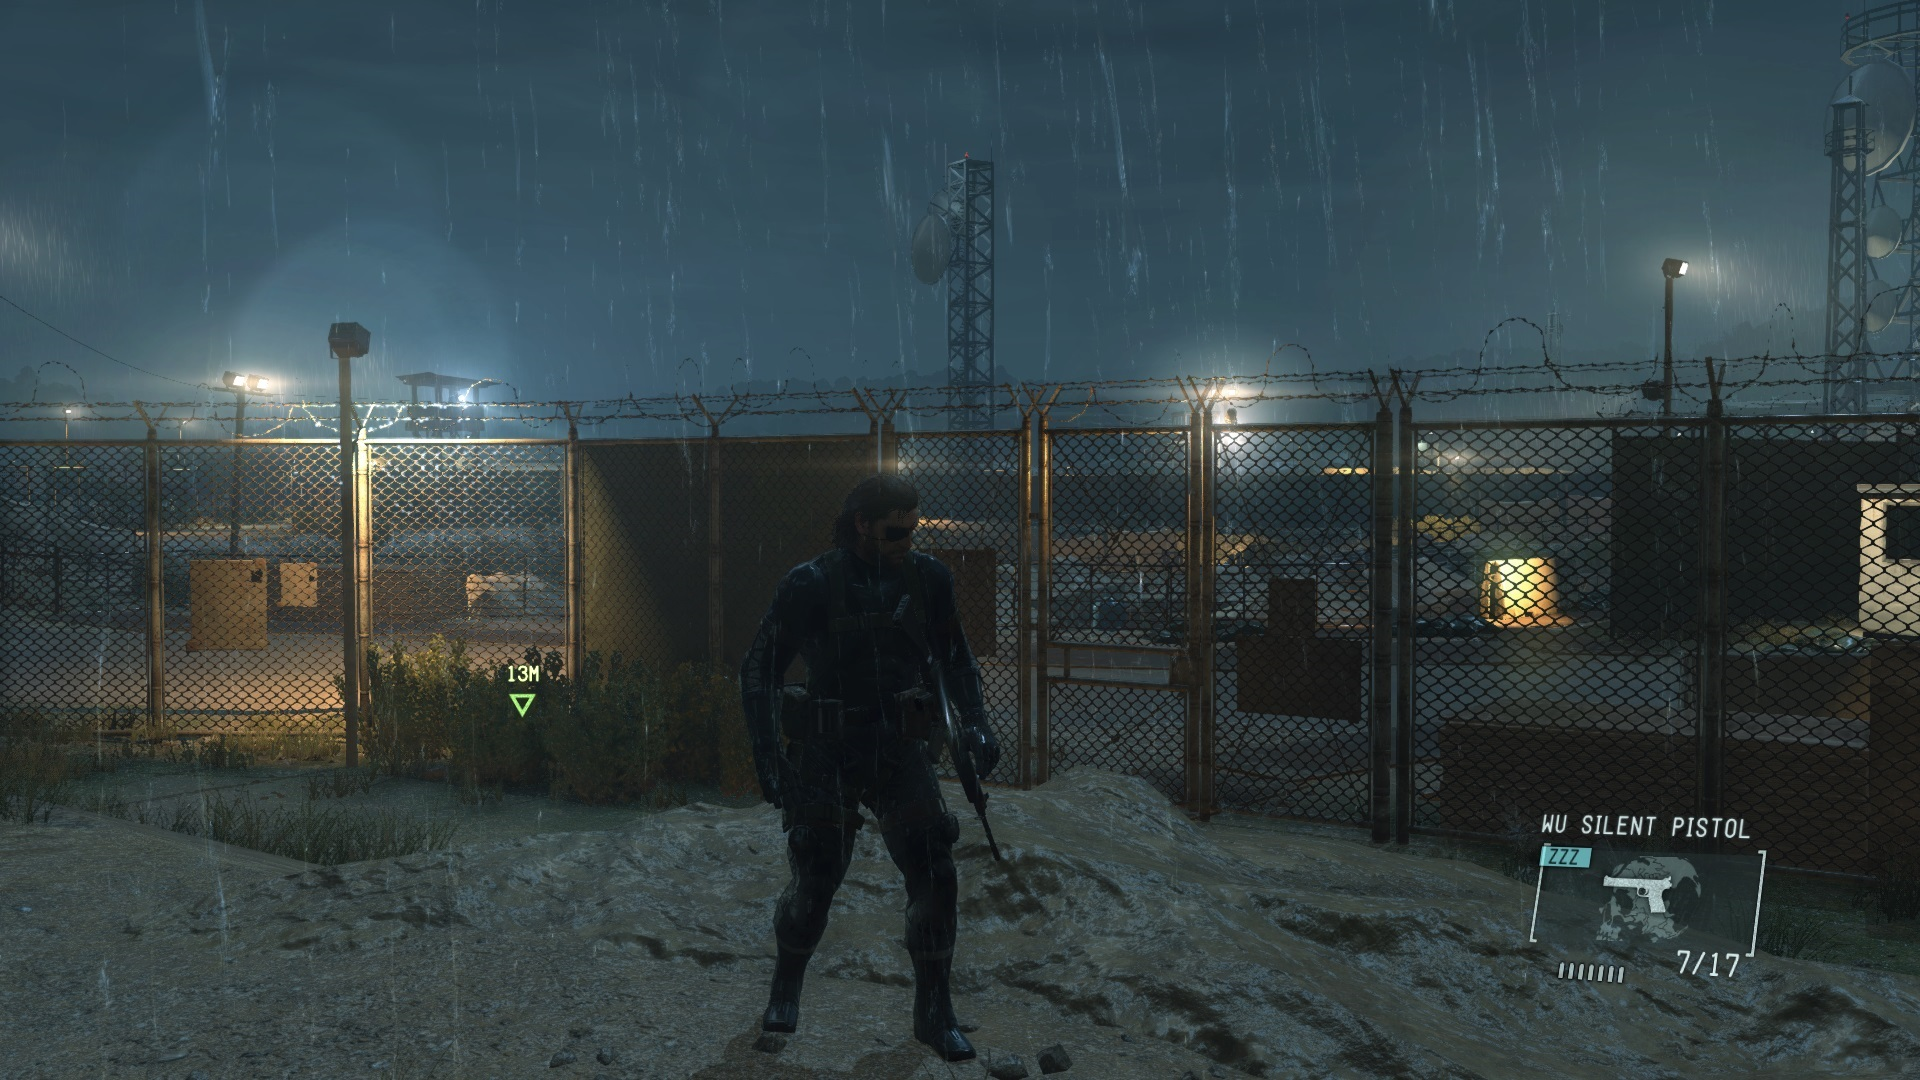 Metal Gear Solid Ground Zeroes Video Game 4k Hd Desktop: Metal Gear Solid V: Ground Zeroes PC Benchmark Performance